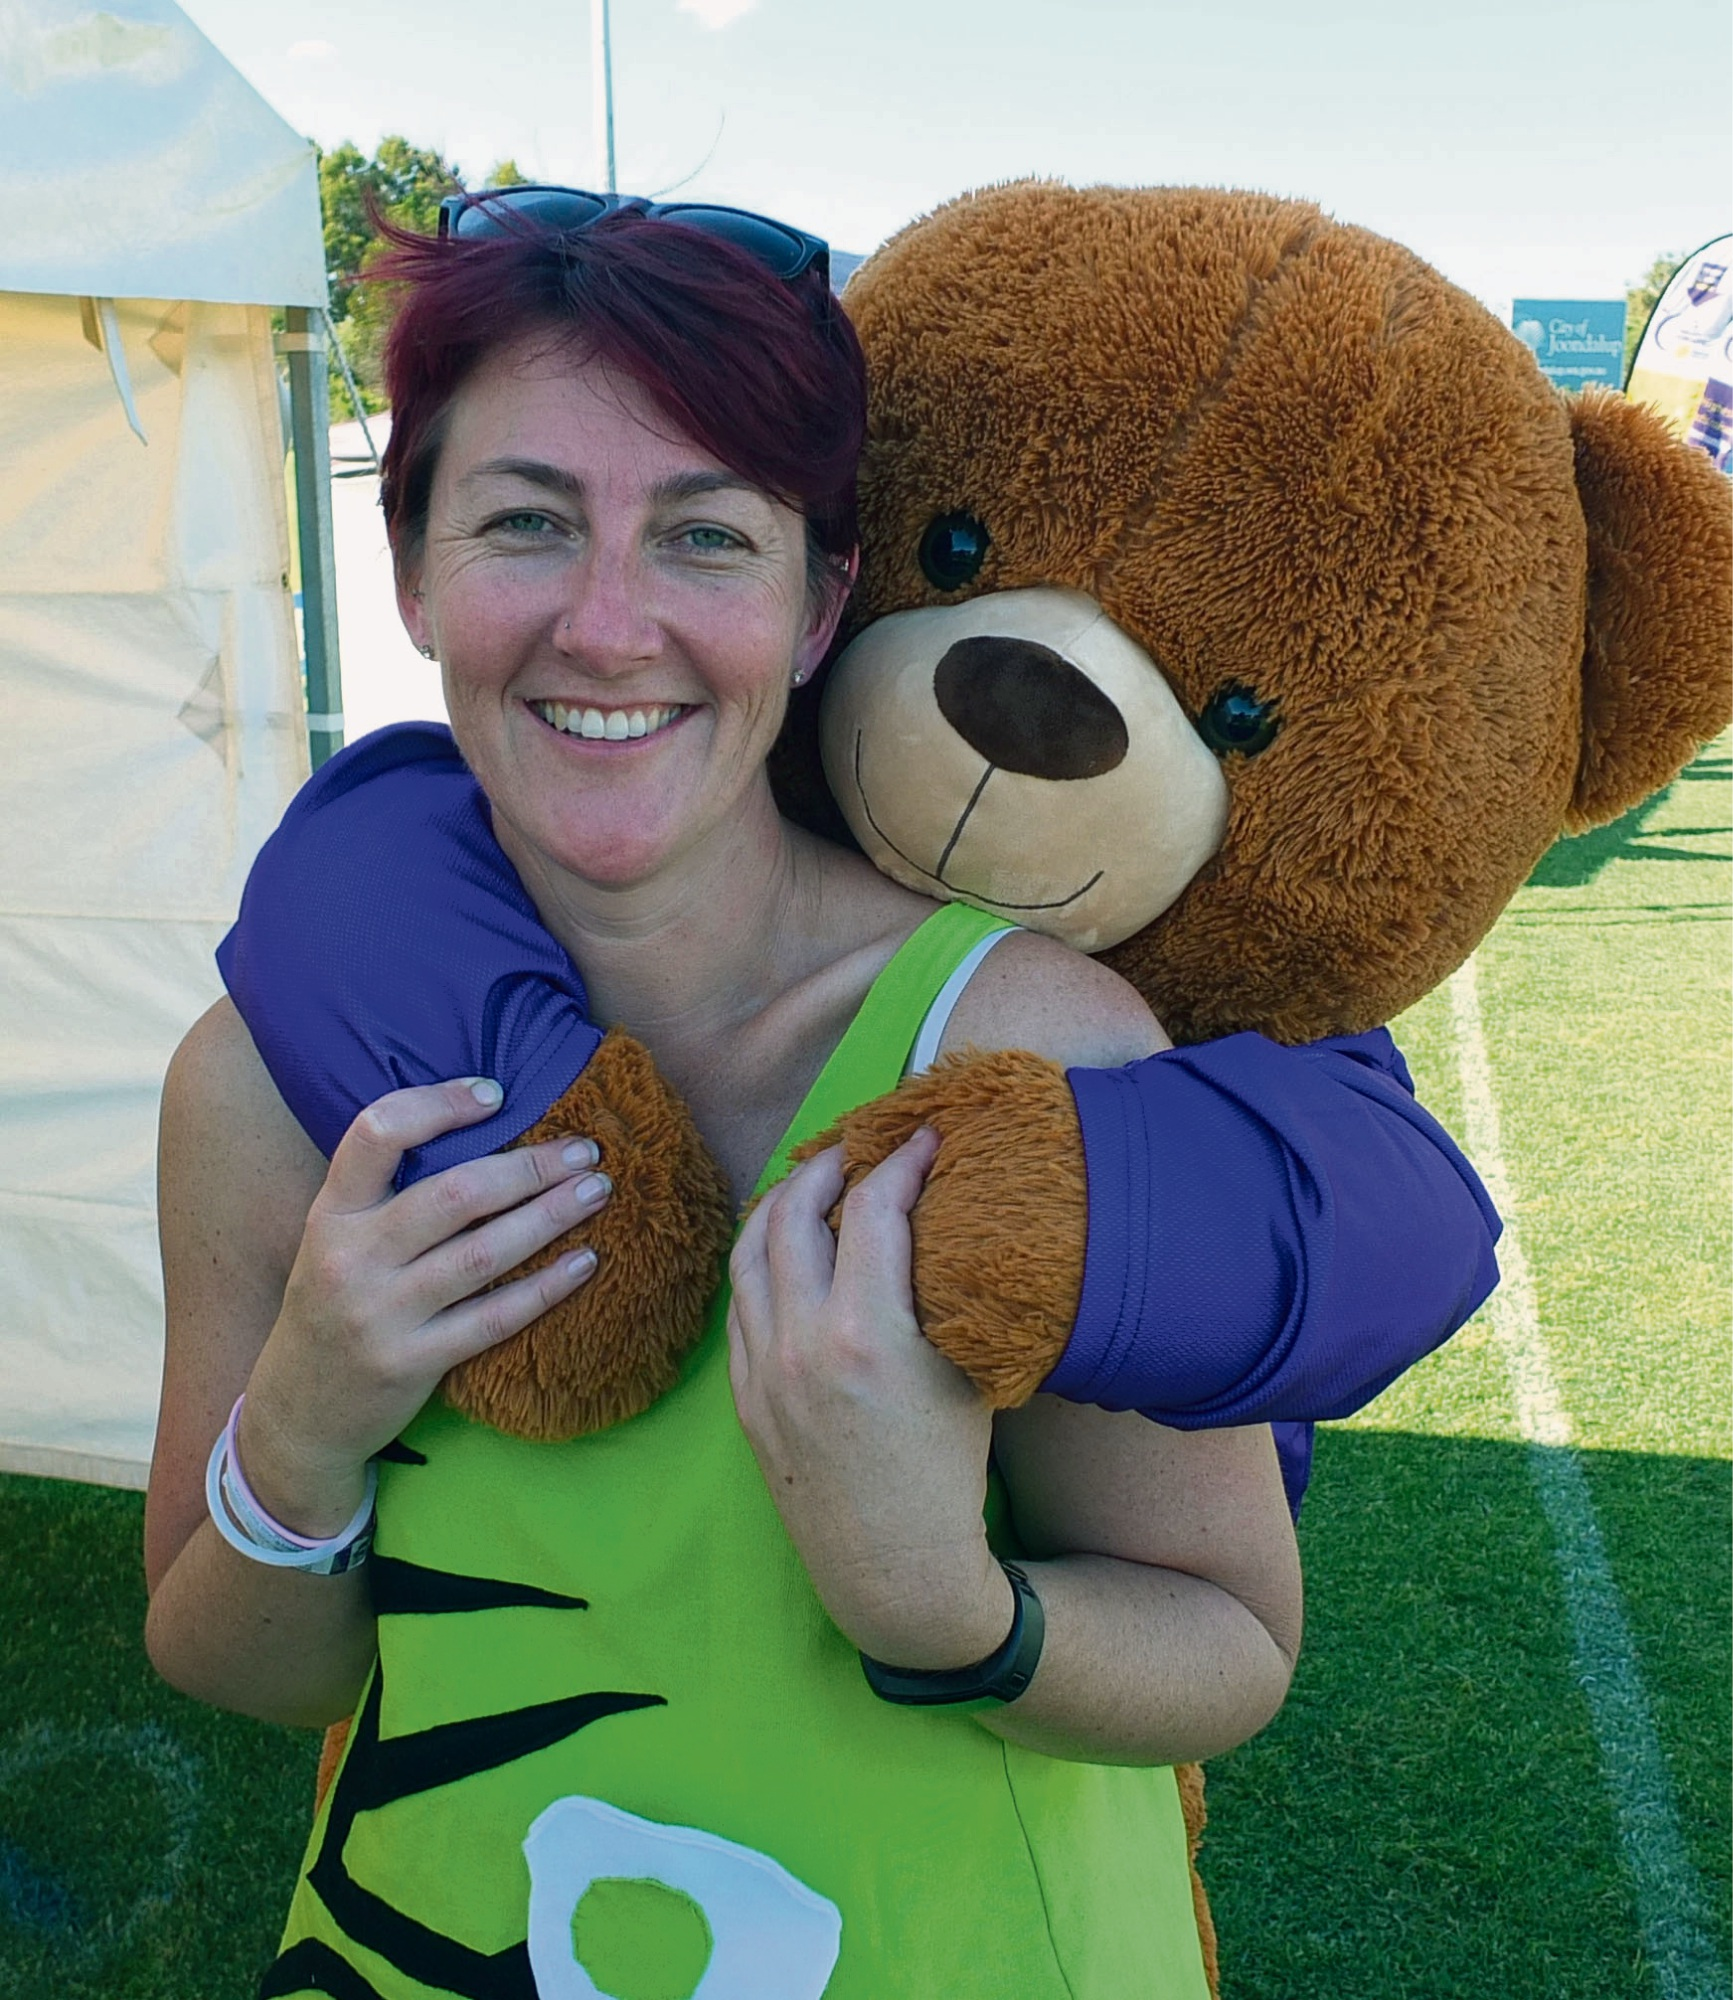 Stacey Johnson of the One Step, Two Step team with the Relay Bear.